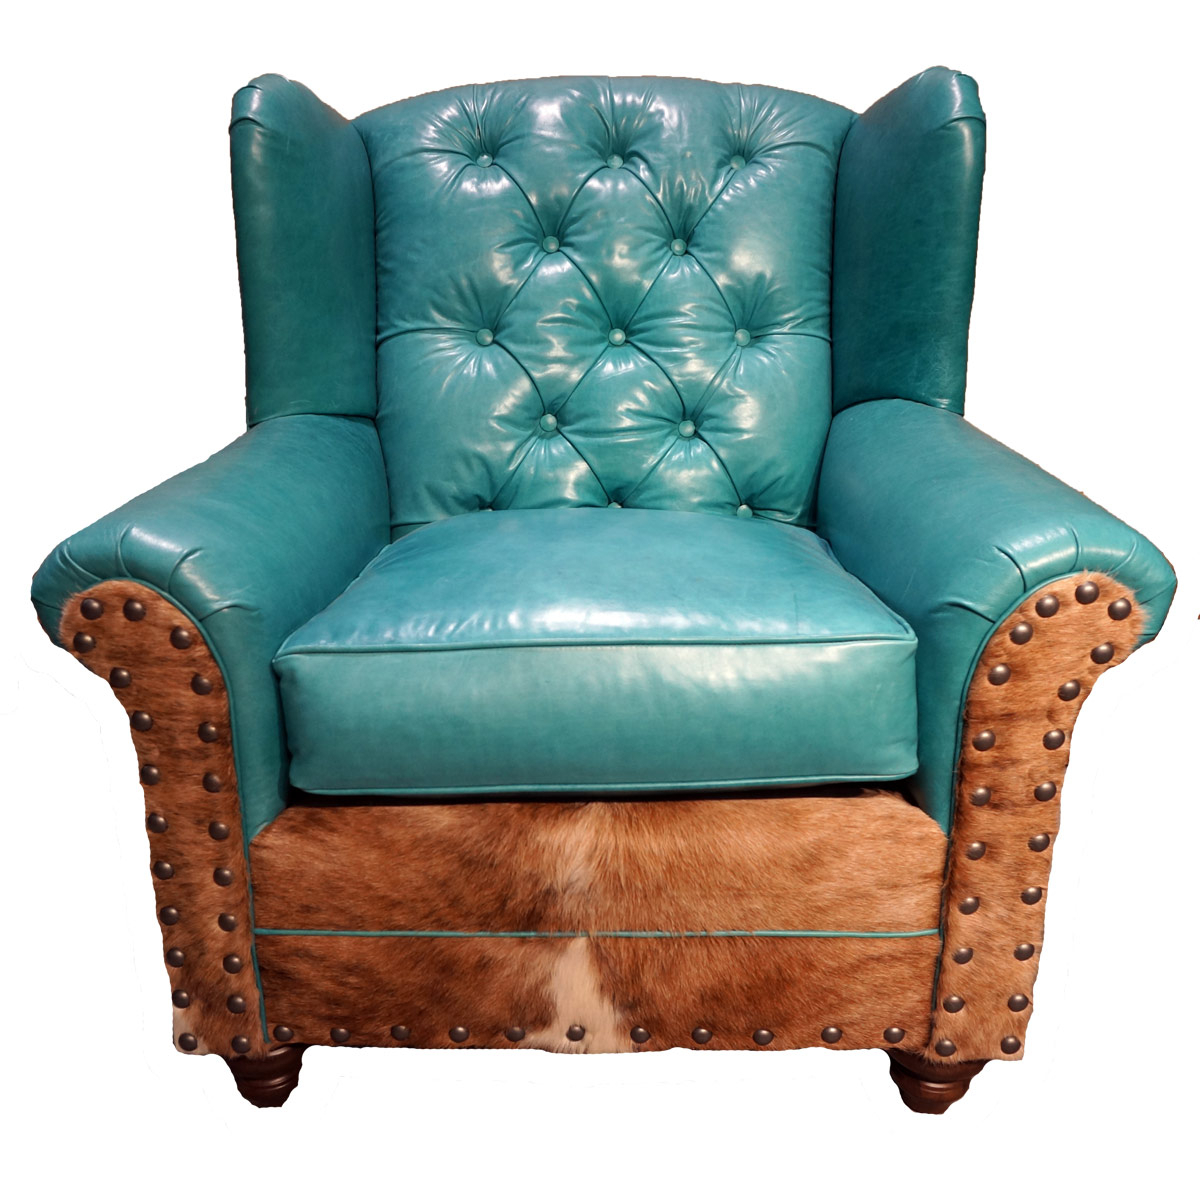 Sweetwater Wingback Chairs In Latest Albuquerque Turquoise Oversized Wingback Chair (View 6 of 20)